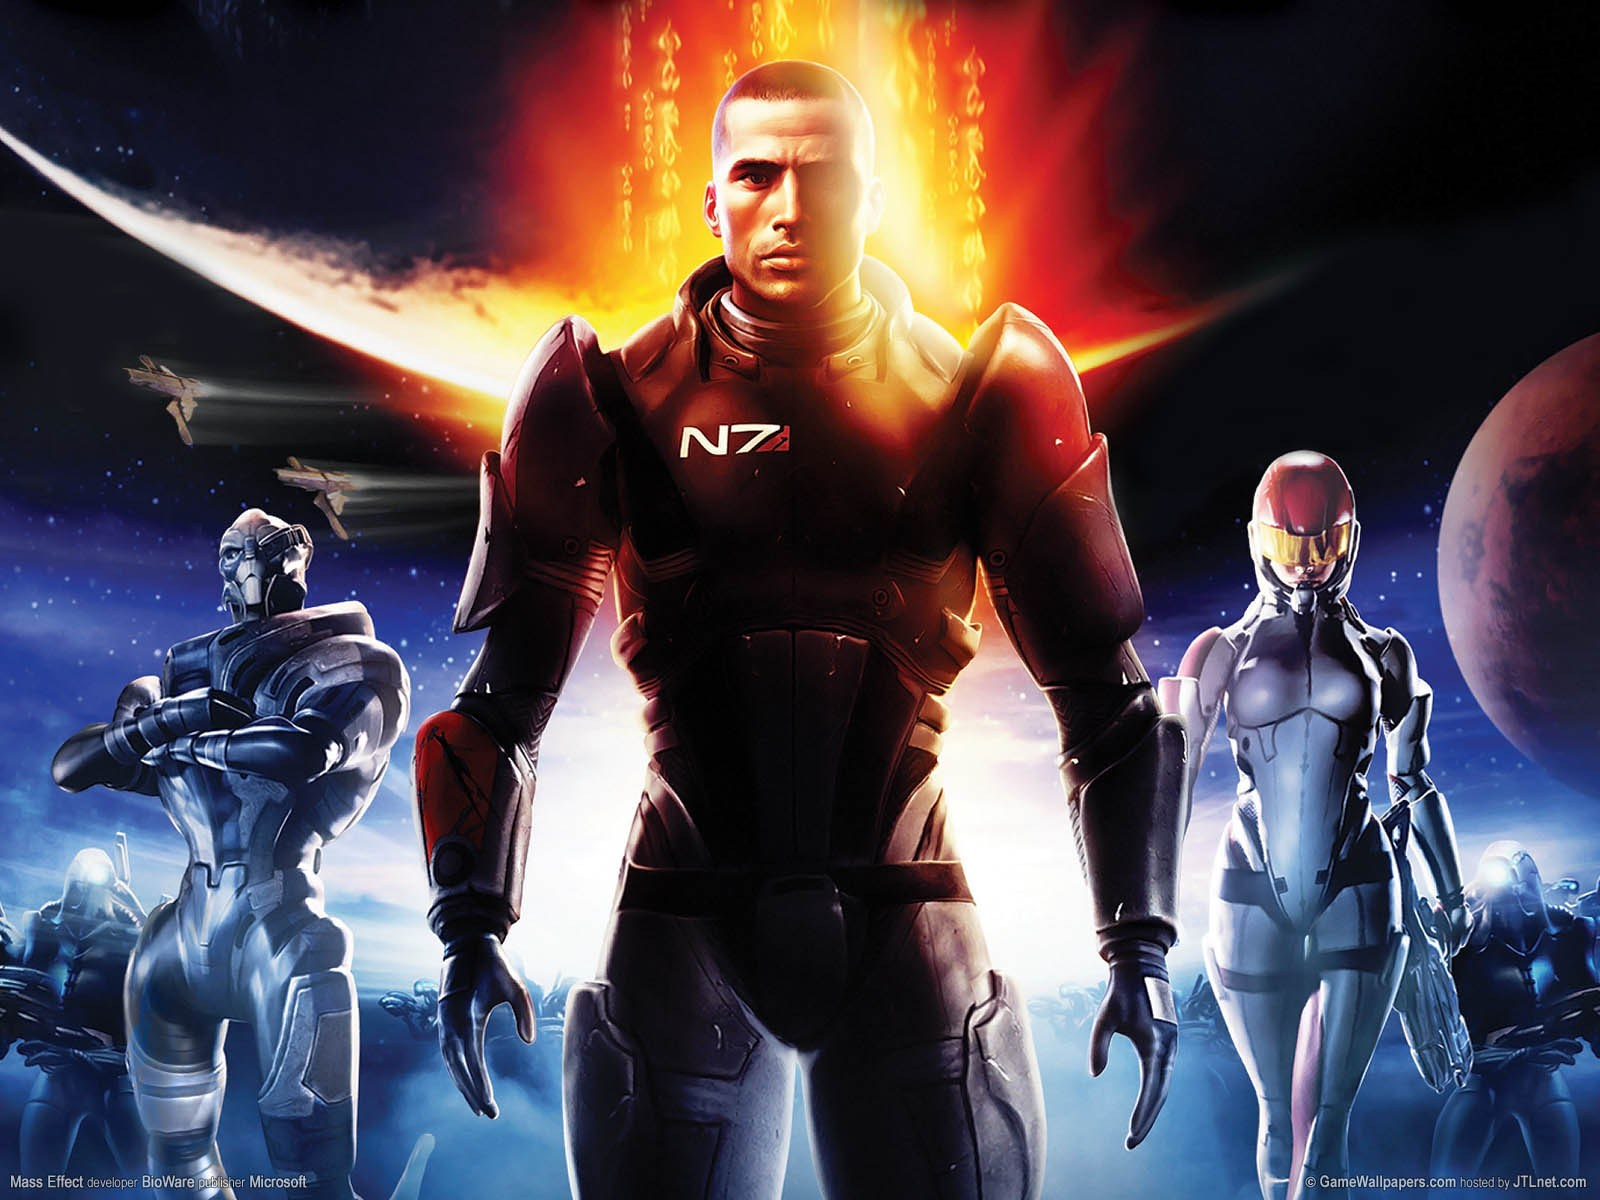 game wallpapers mass effect 2